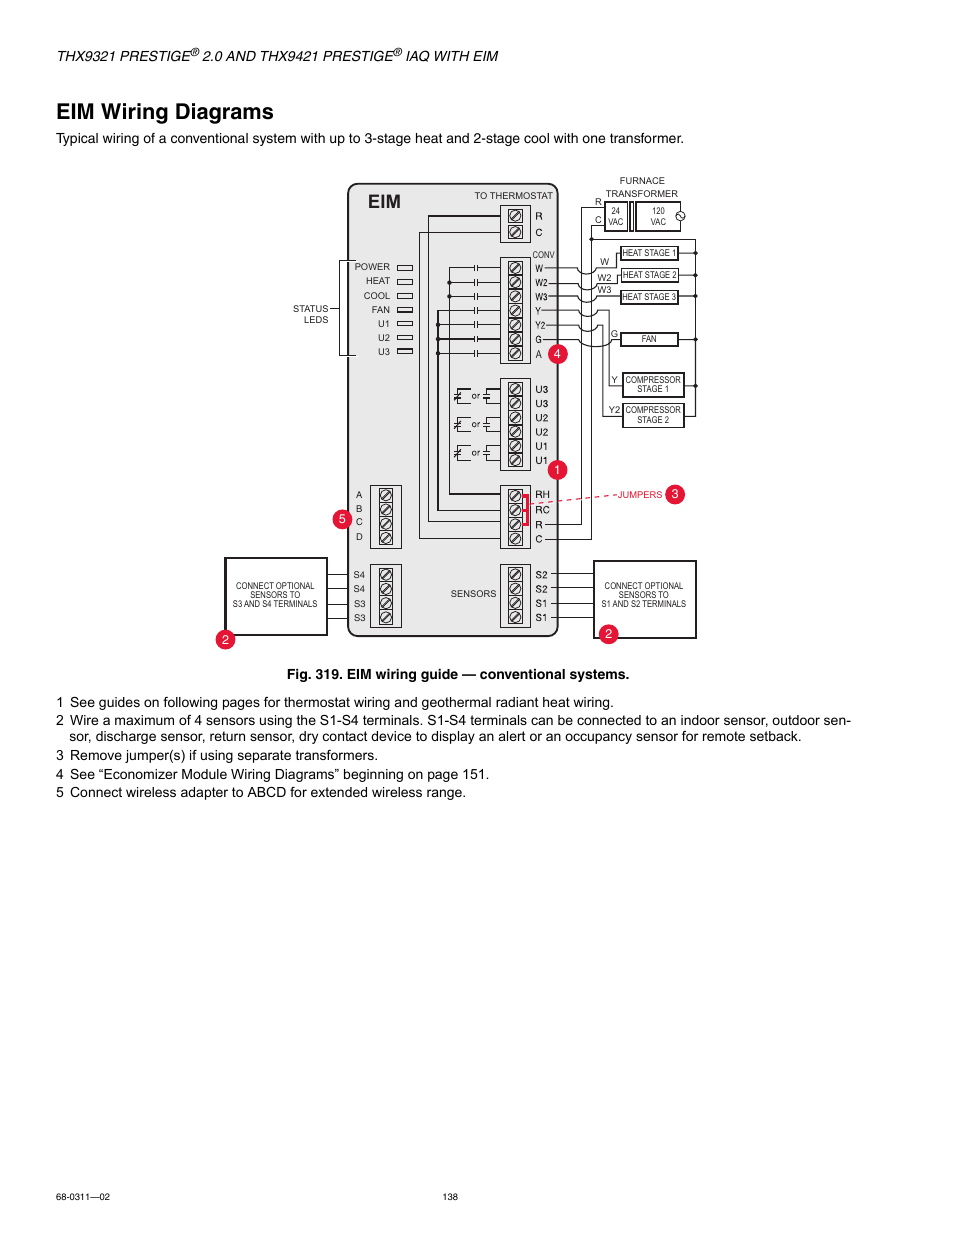 honeywell eim wiring diagram